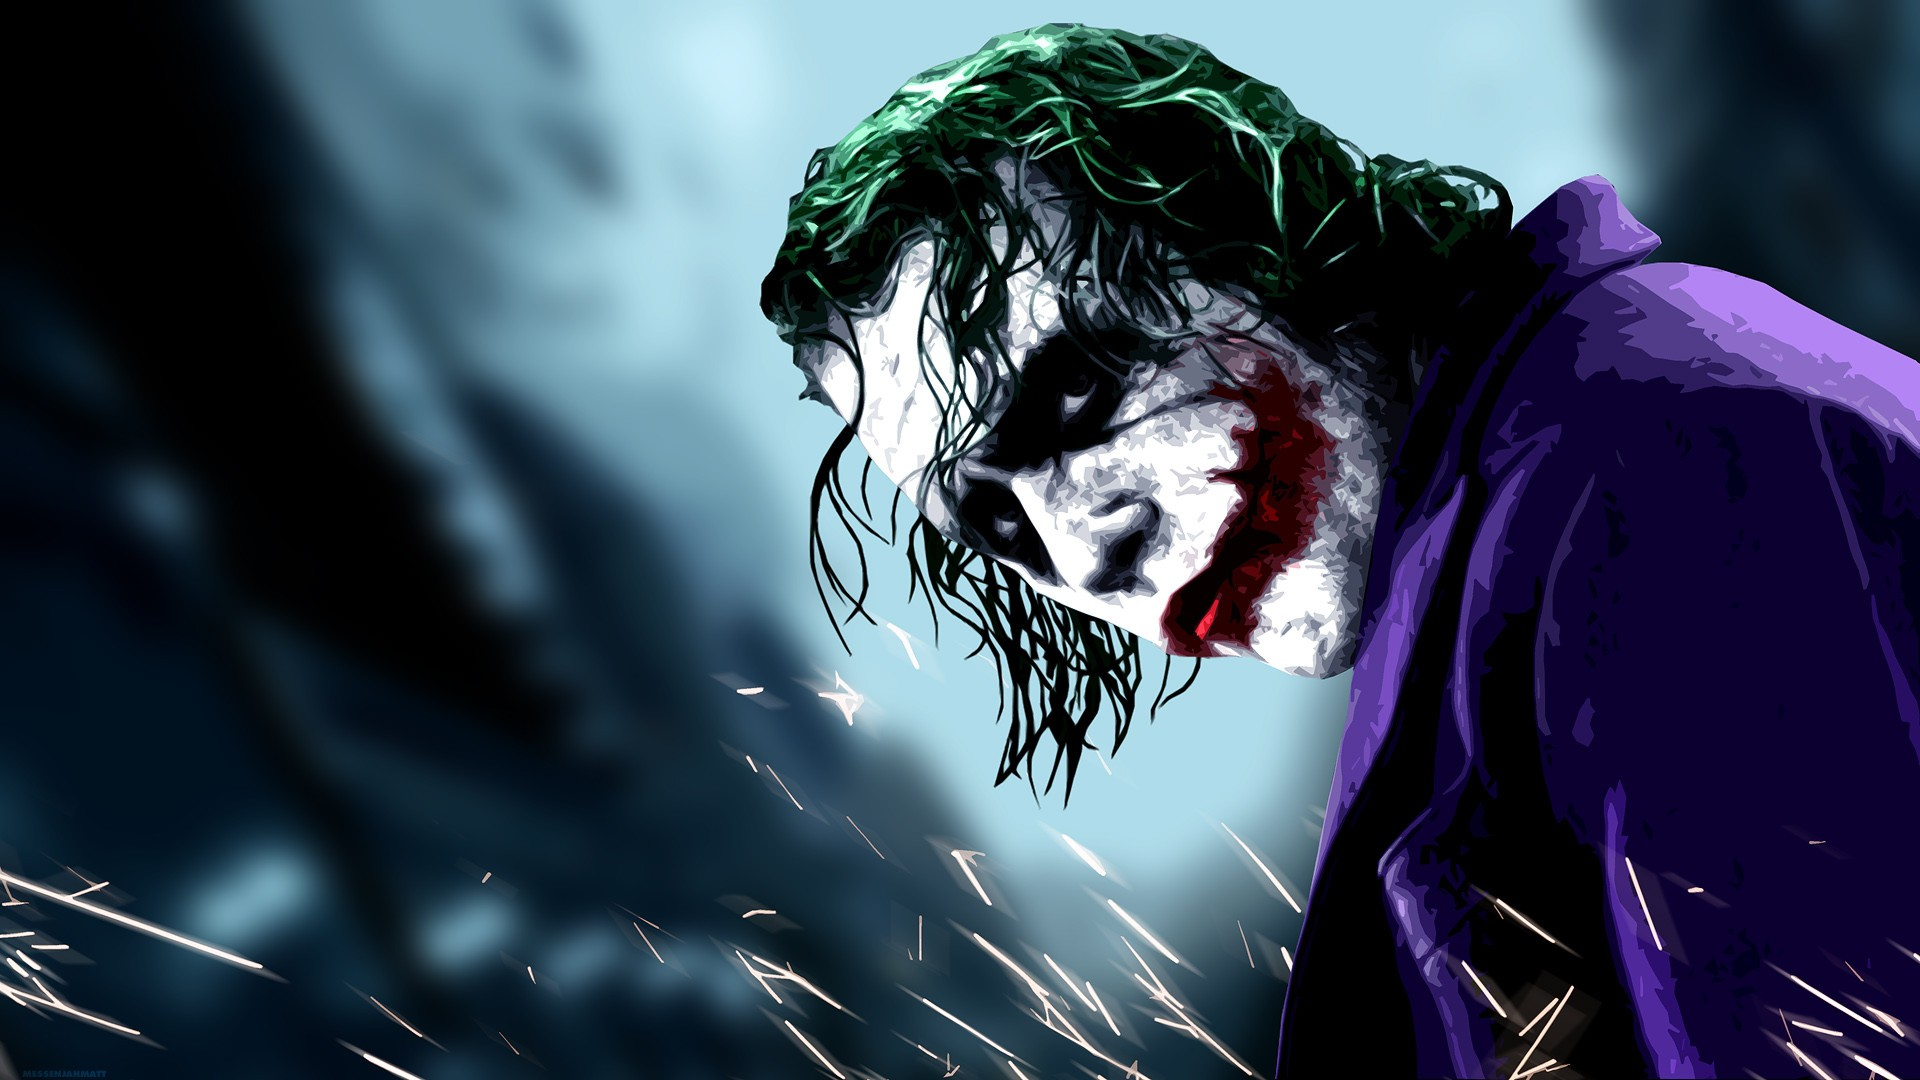 Joker hd hd movies 4k wallpapers images backgrounds for Joker immagini hd